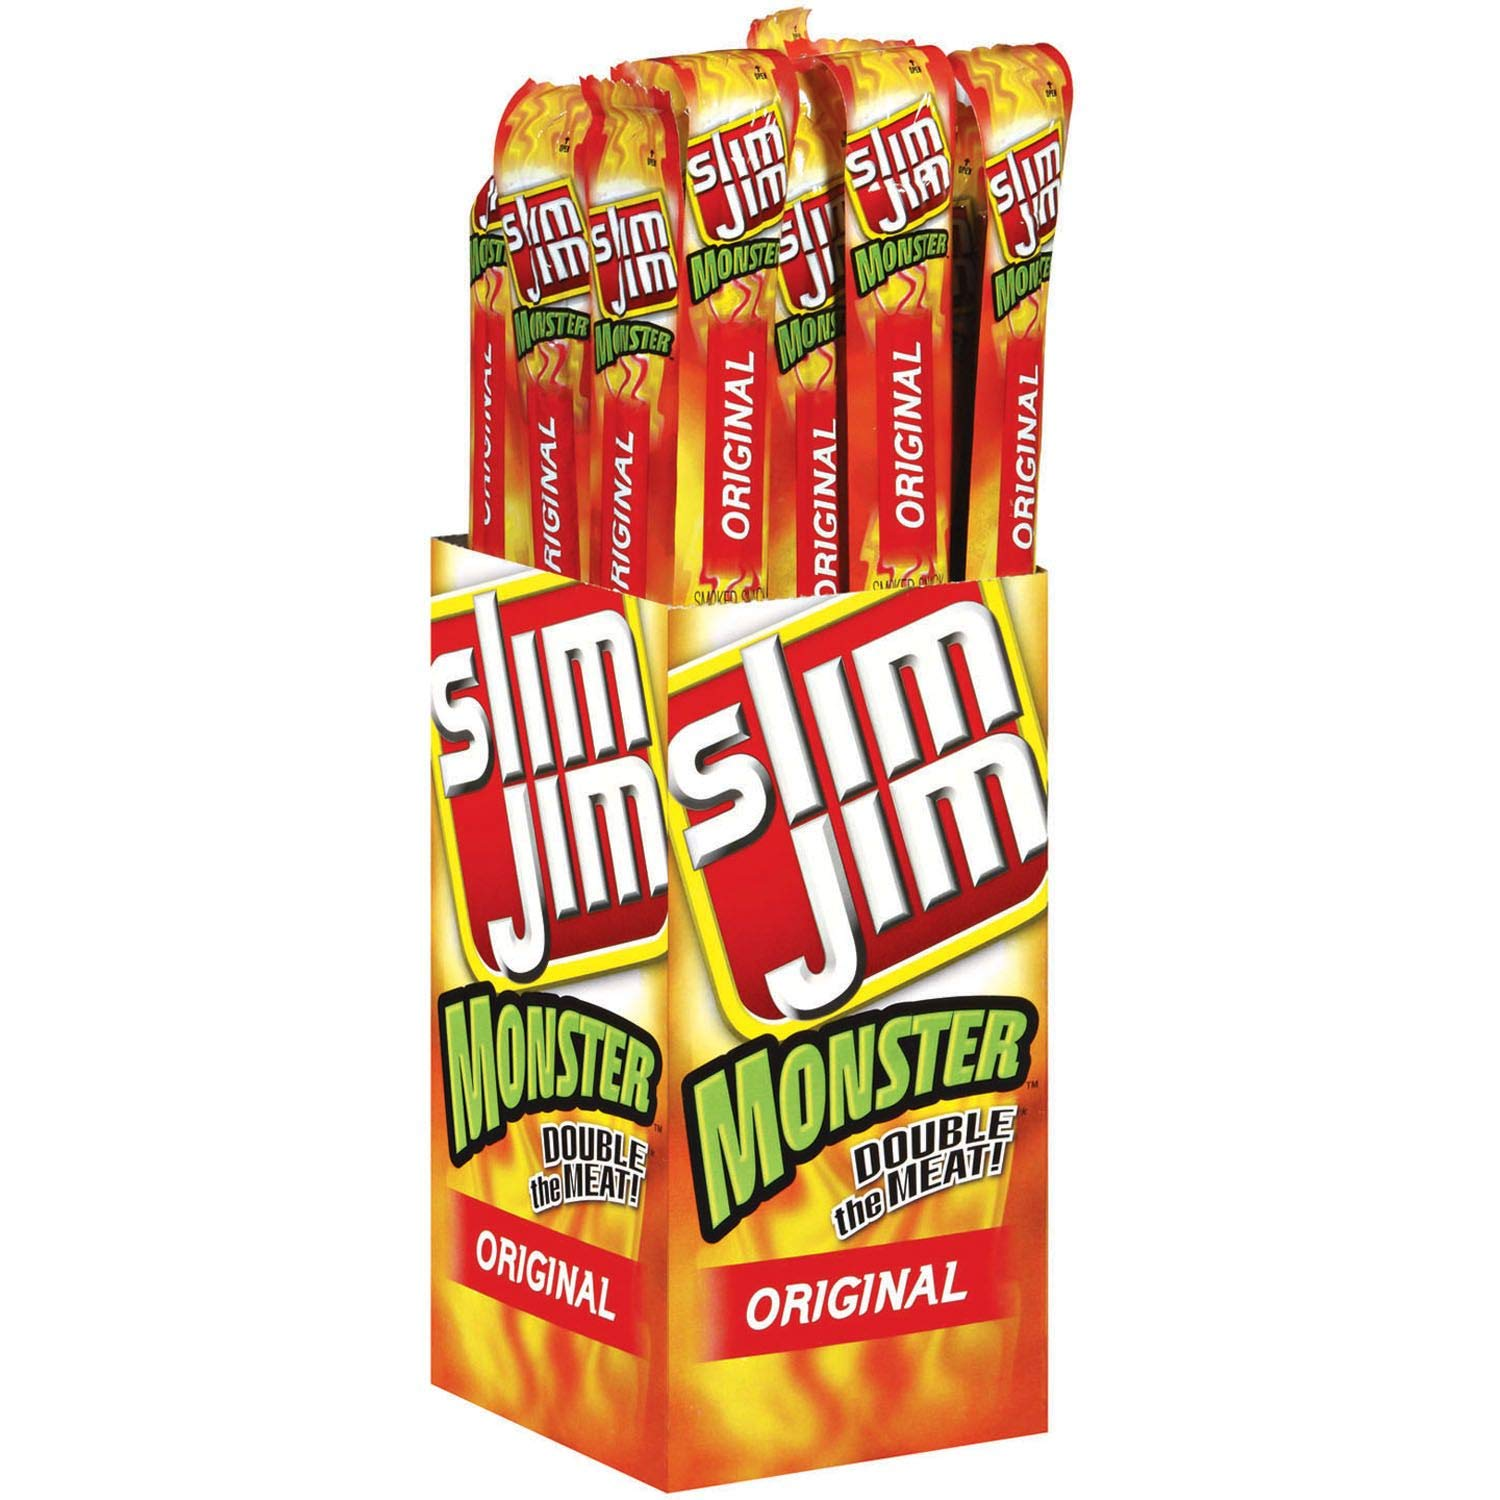 Product of Slim Jim Monster Original (18 ct.) - Jerky [Bulk Savings]